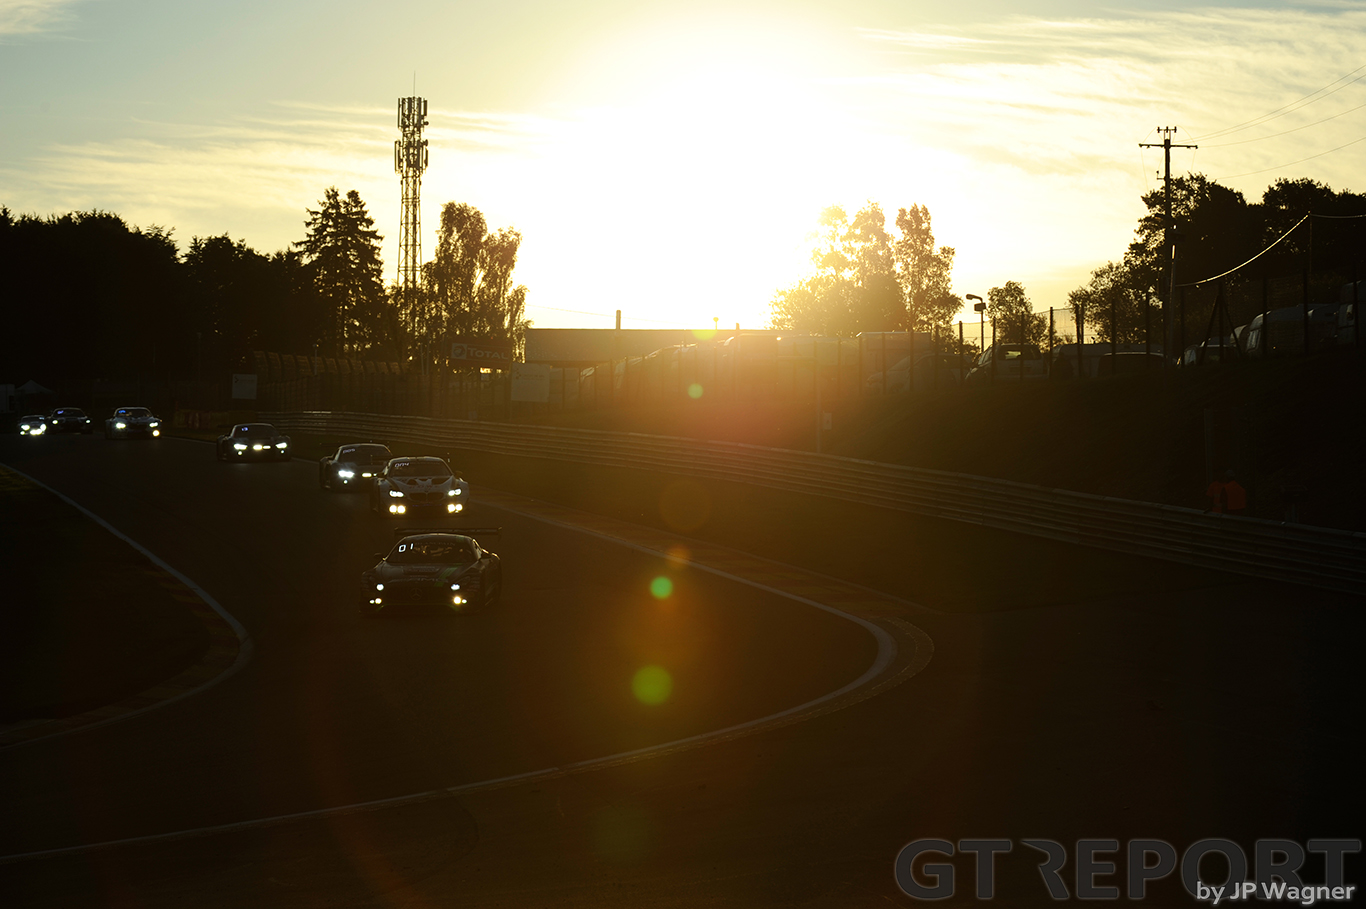 Spa 24 Hours gallery: The saints are coming, Pt.II